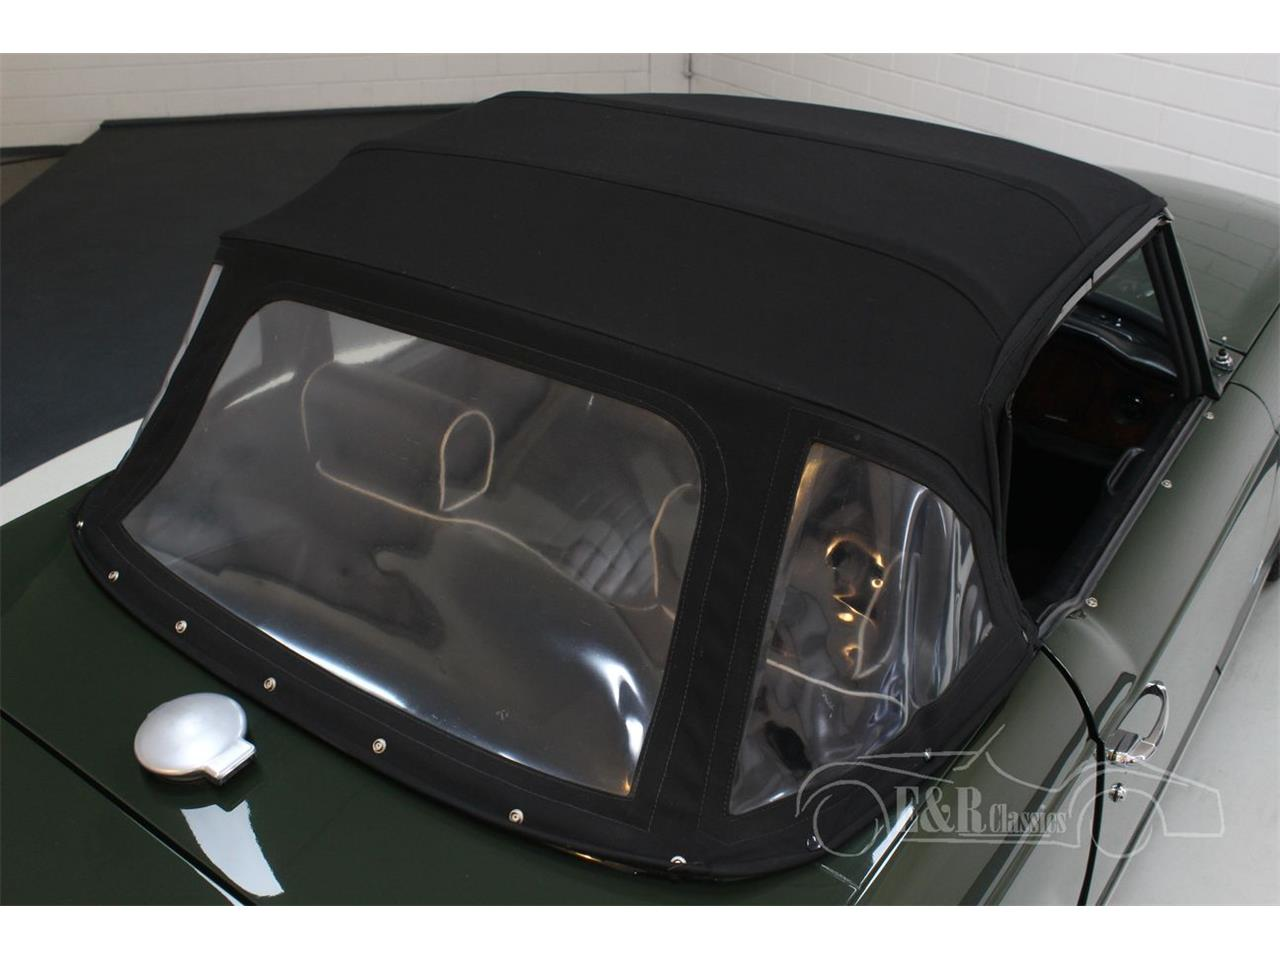 Large Picture of Classic '69 Triumph TR6 - $33,700.00 Offered by E & R Classics - PWOE